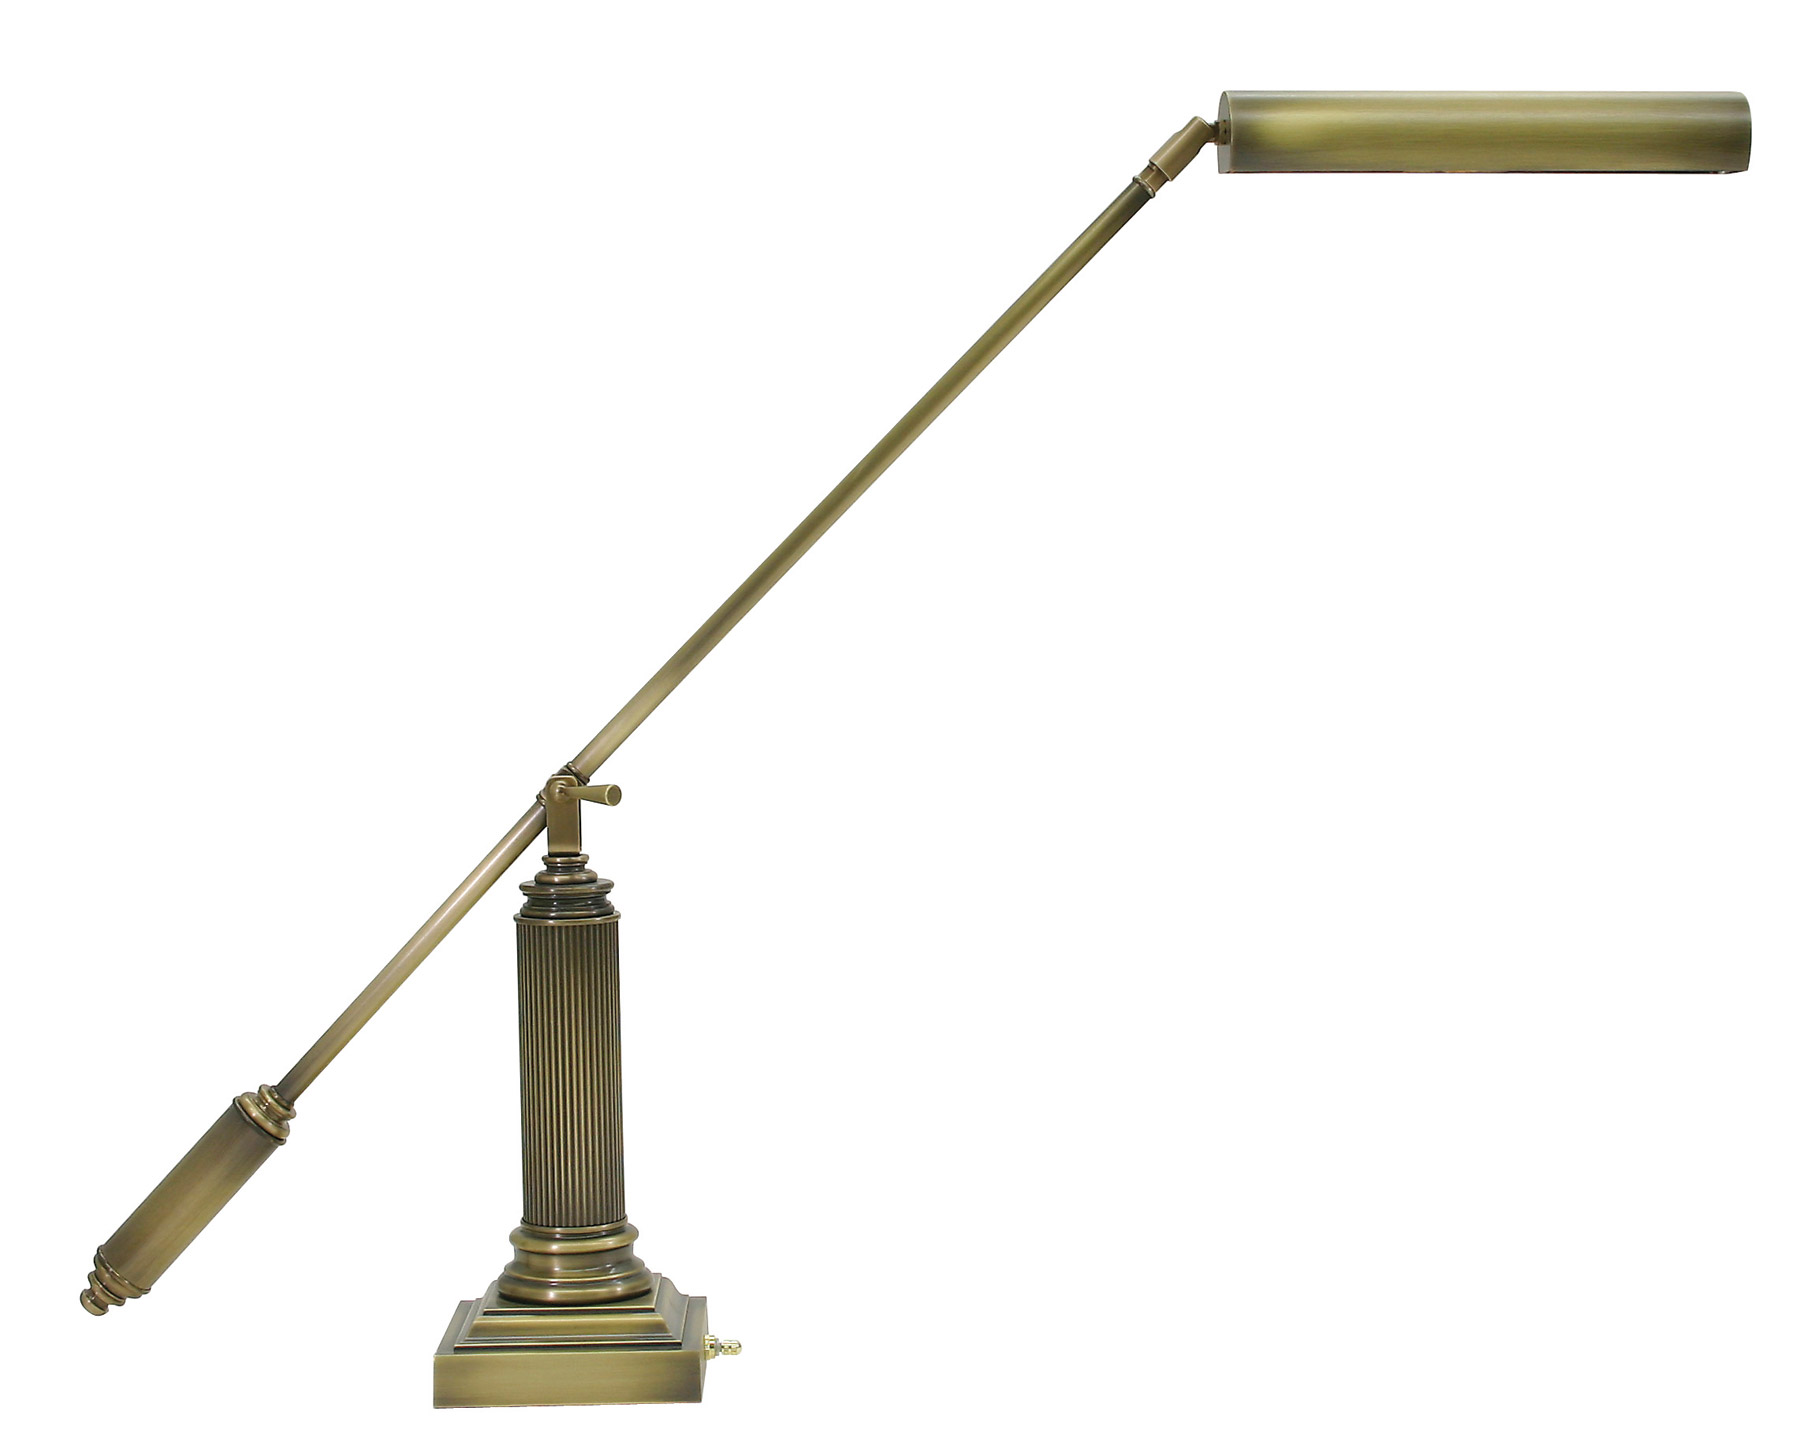 House Of Troy P10 191 71 Grand Piano Lamps Fluorescent Balance Arm Piano Desk Lamp